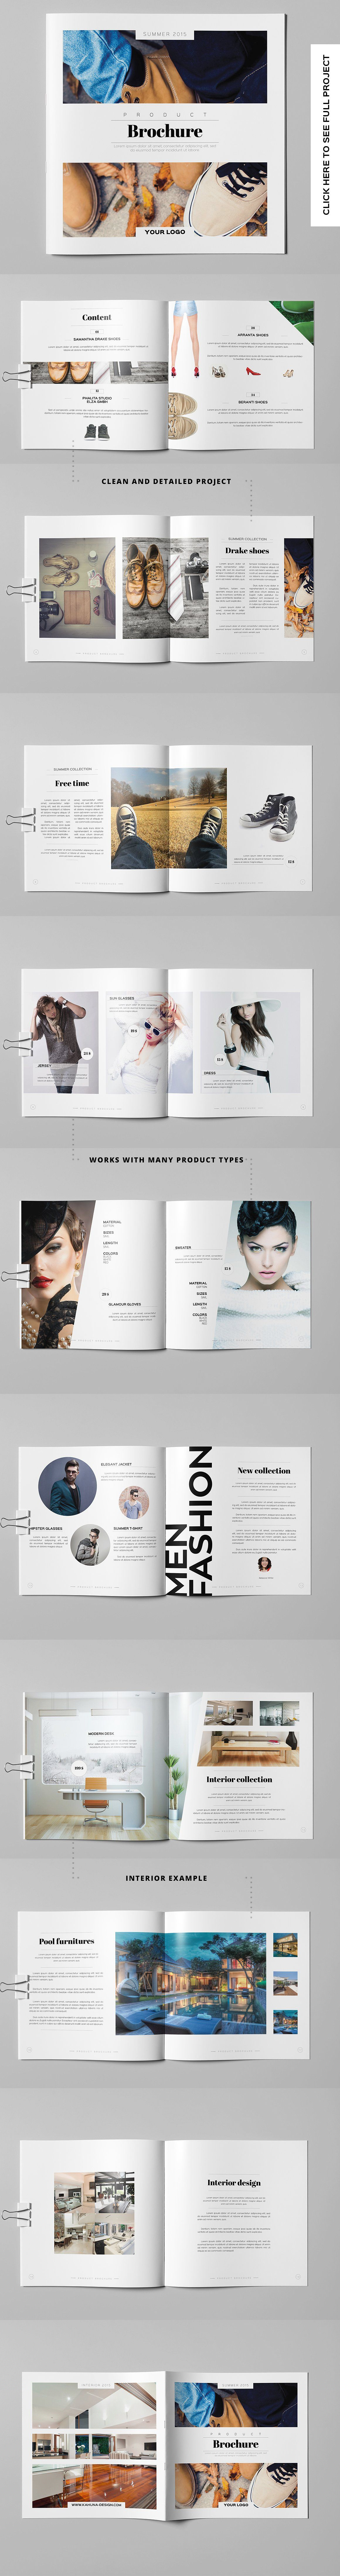 Product Brochure / Catalog | Product brochure, Brochures and Template